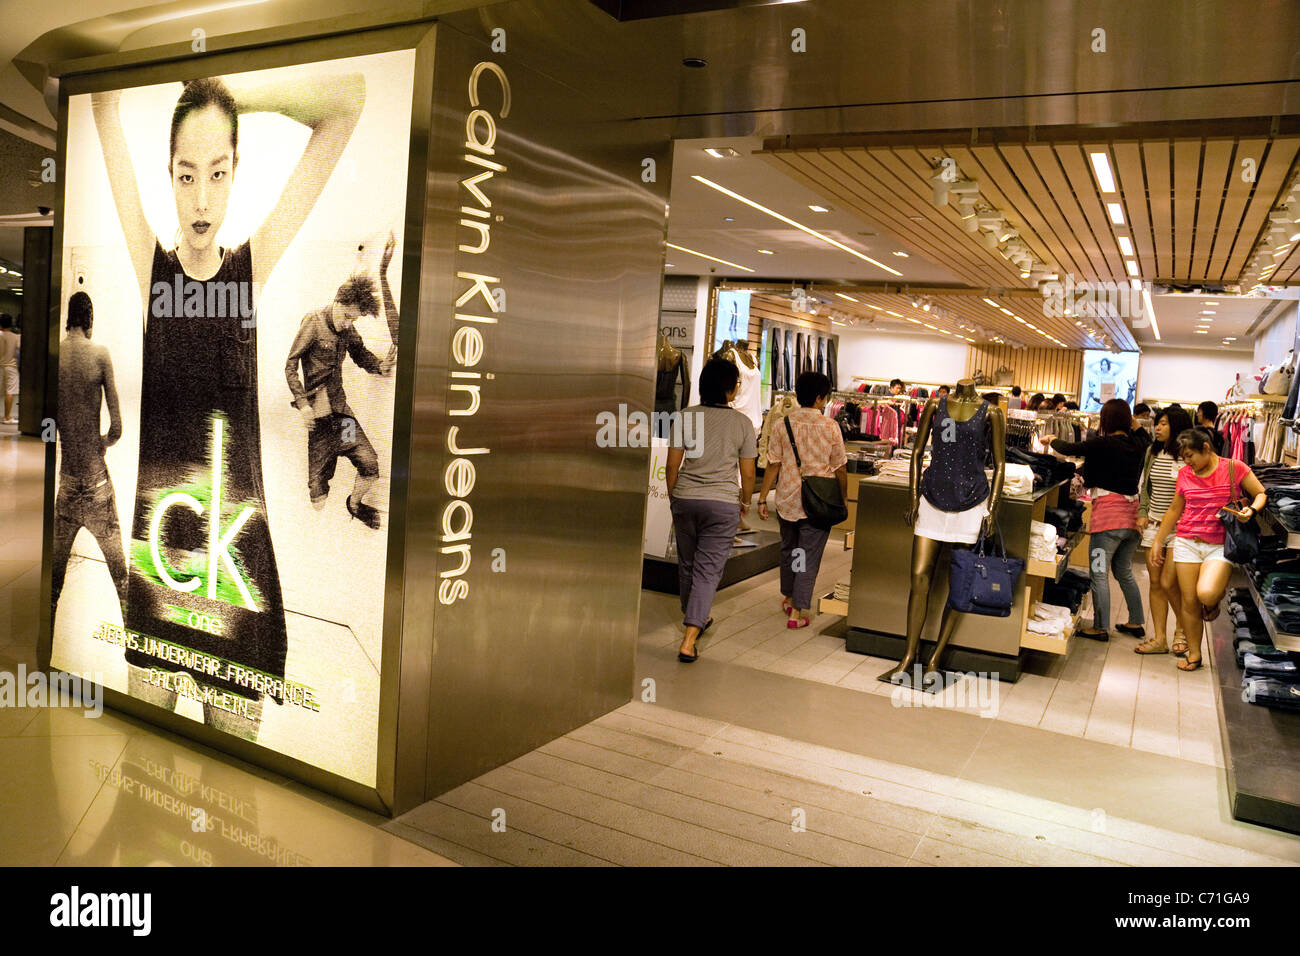 the calvin klein jeans store ion mall singapore asia stock photo 38758113 alamy. Black Bedroom Furniture Sets. Home Design Ideas